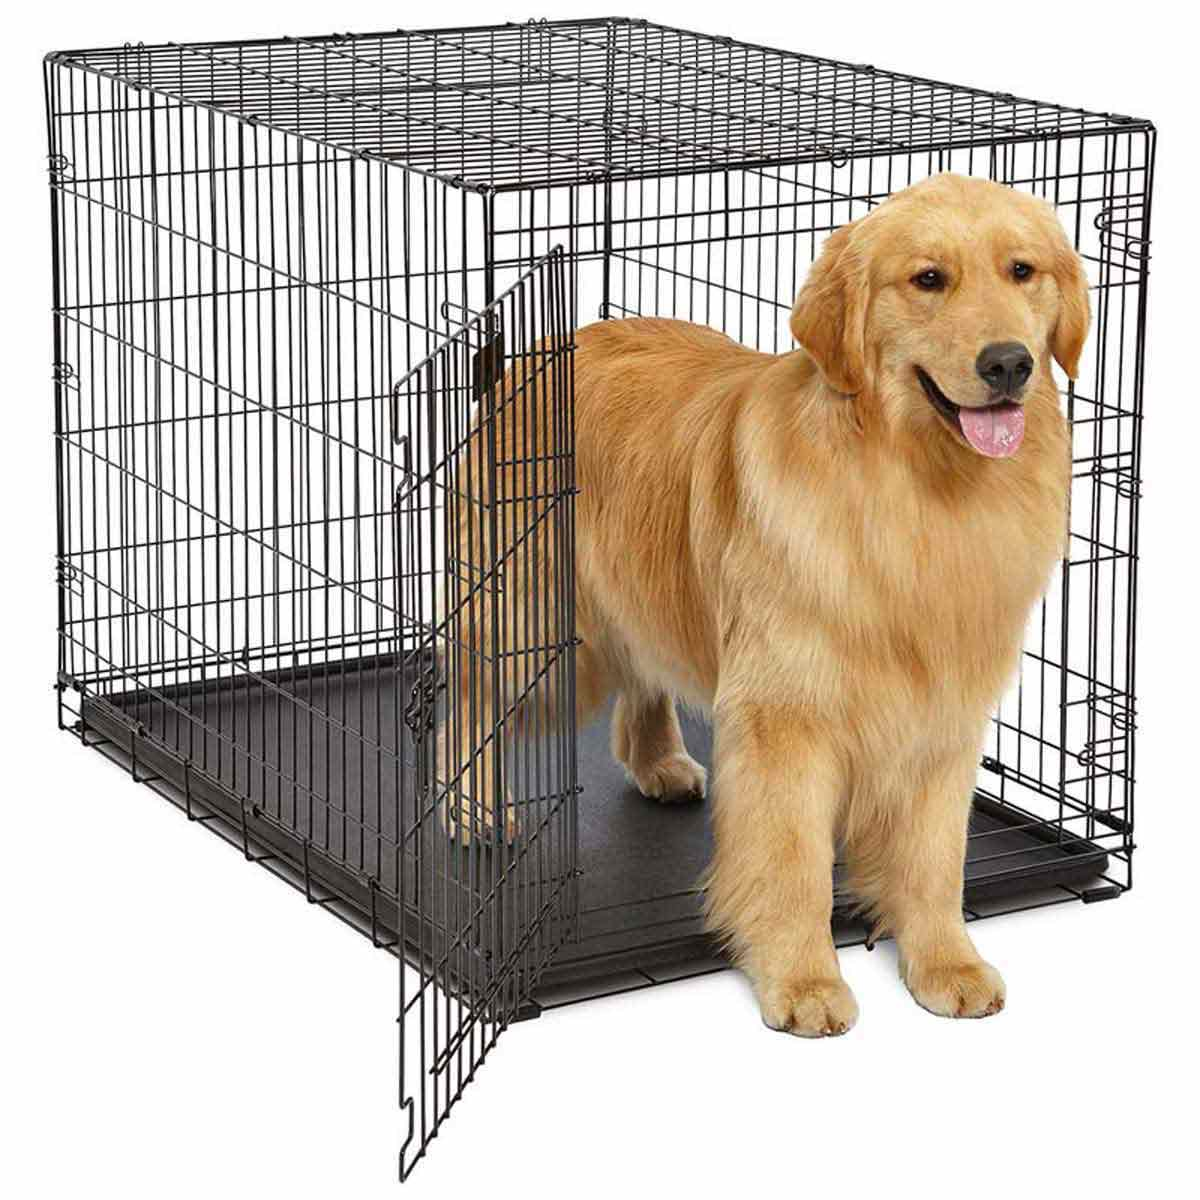 Midwest ConTour Crate for Dogs - Single Door - 42 inches by 28 inches by 30 inches